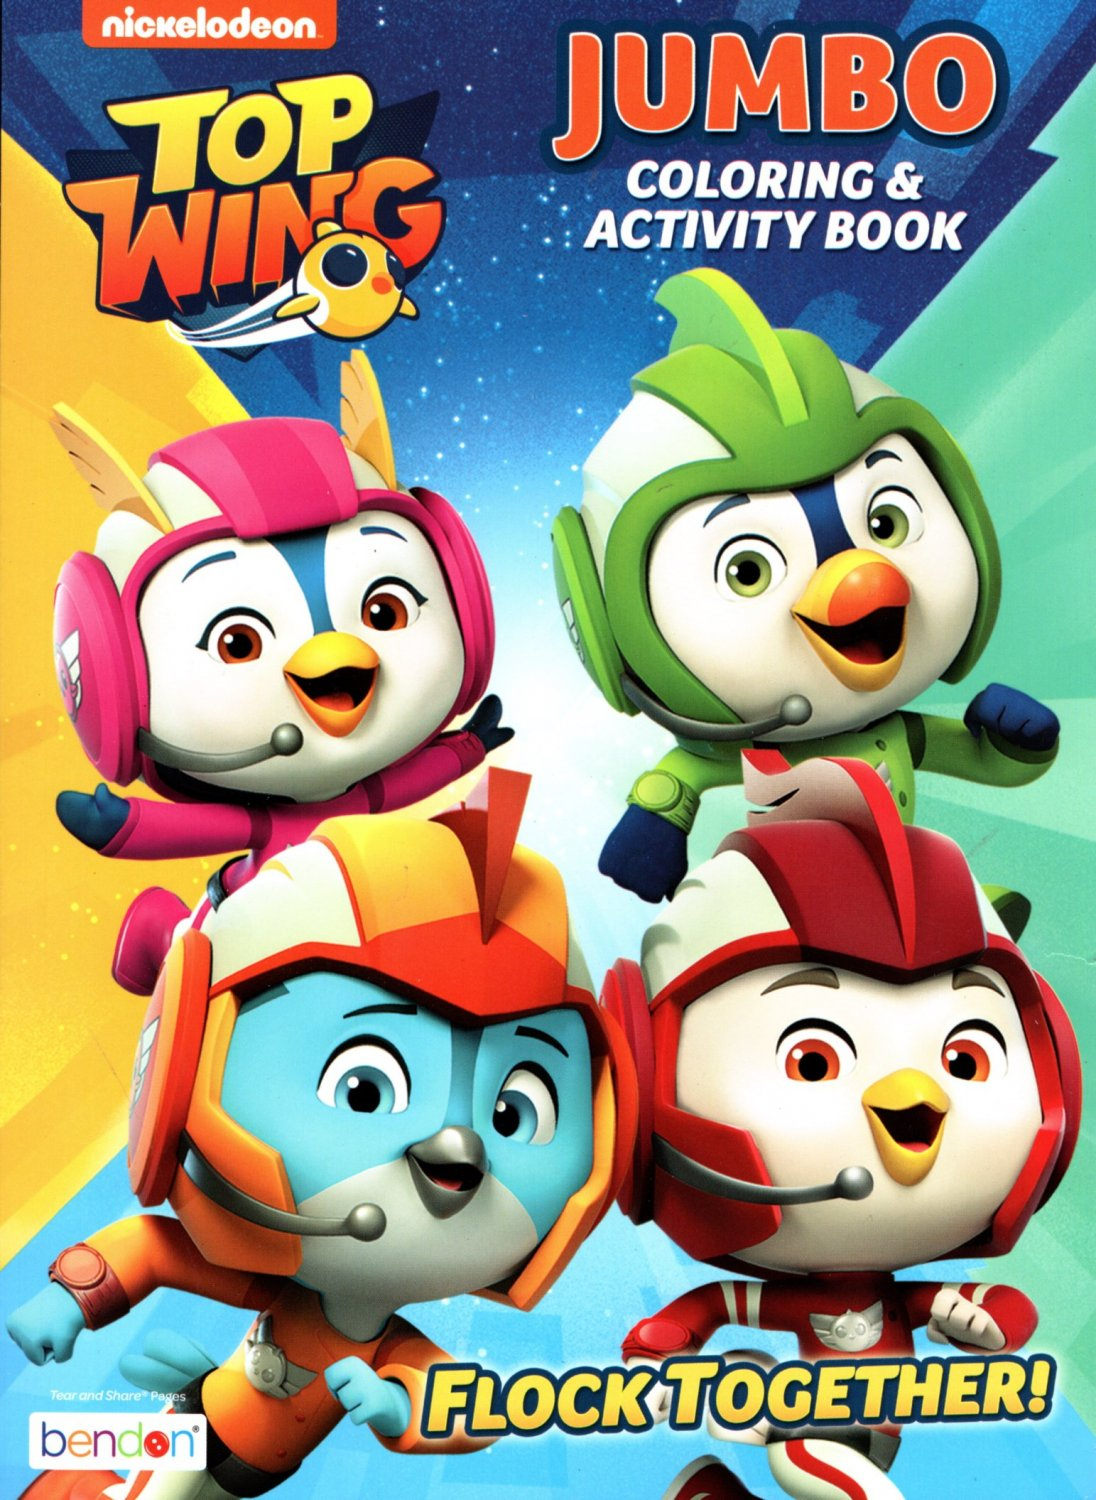 Nickelodeon - Top Wing - Jumbo Coloring & Activity Book - Flock Together